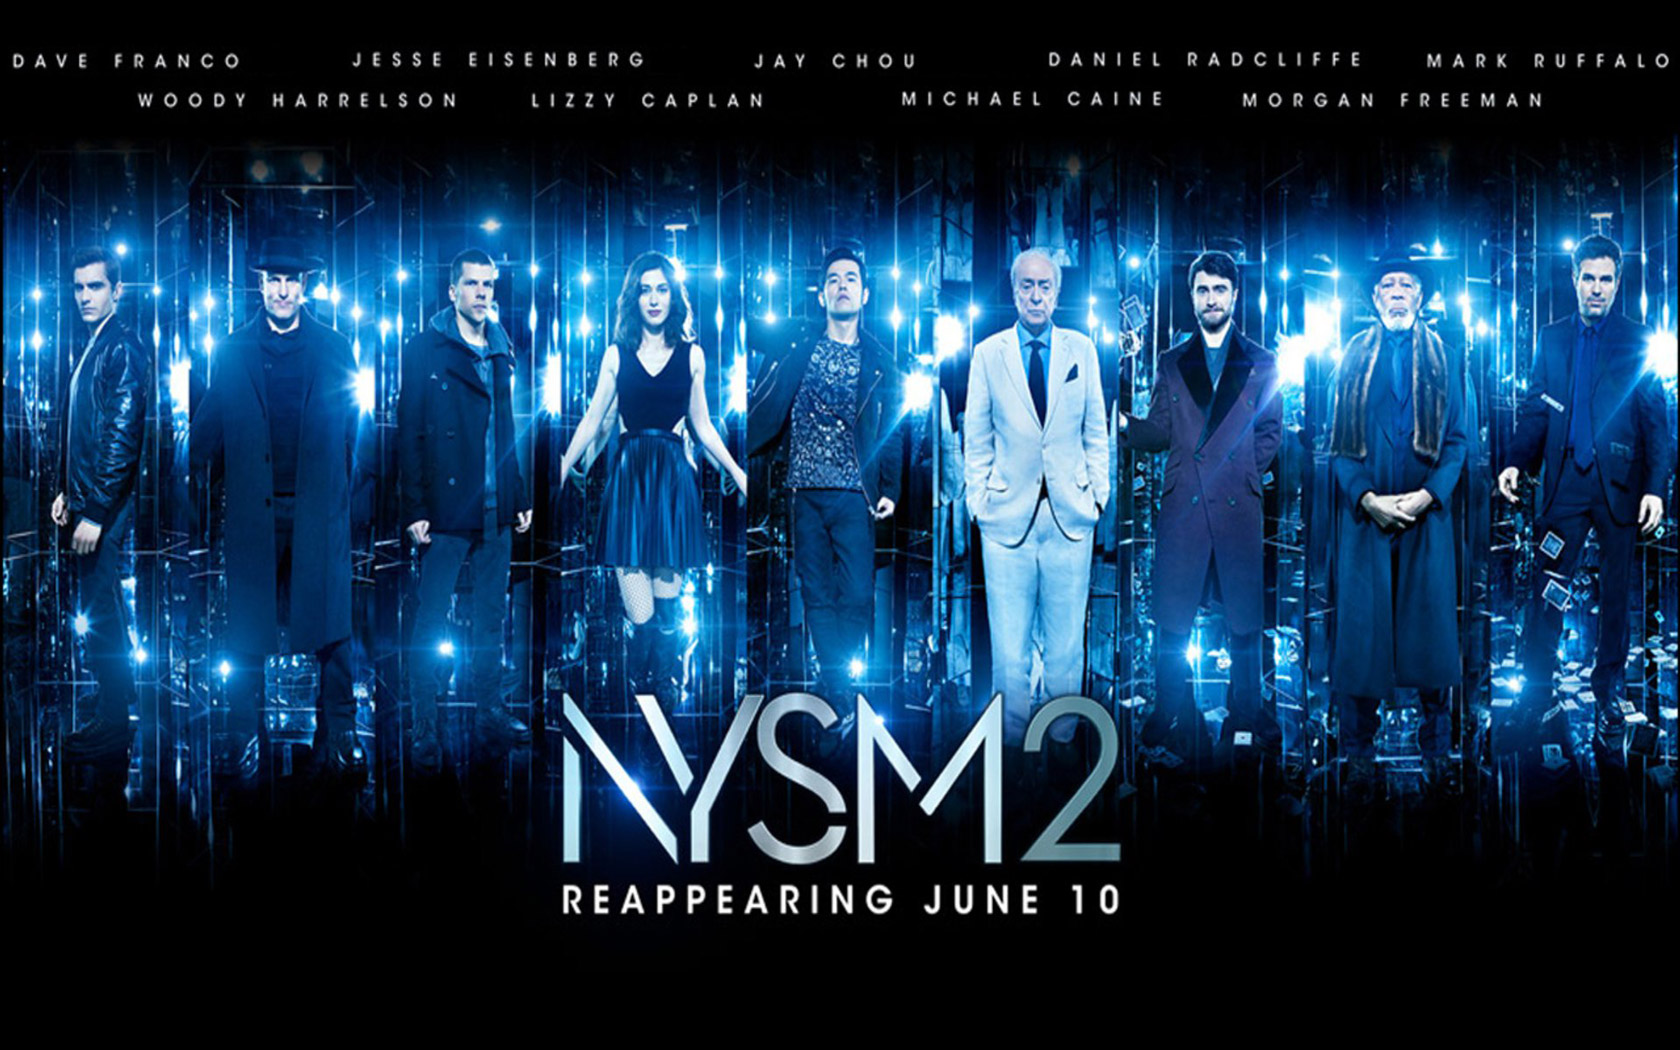 Now you see me 2 review does it have the magic touch Film hd me